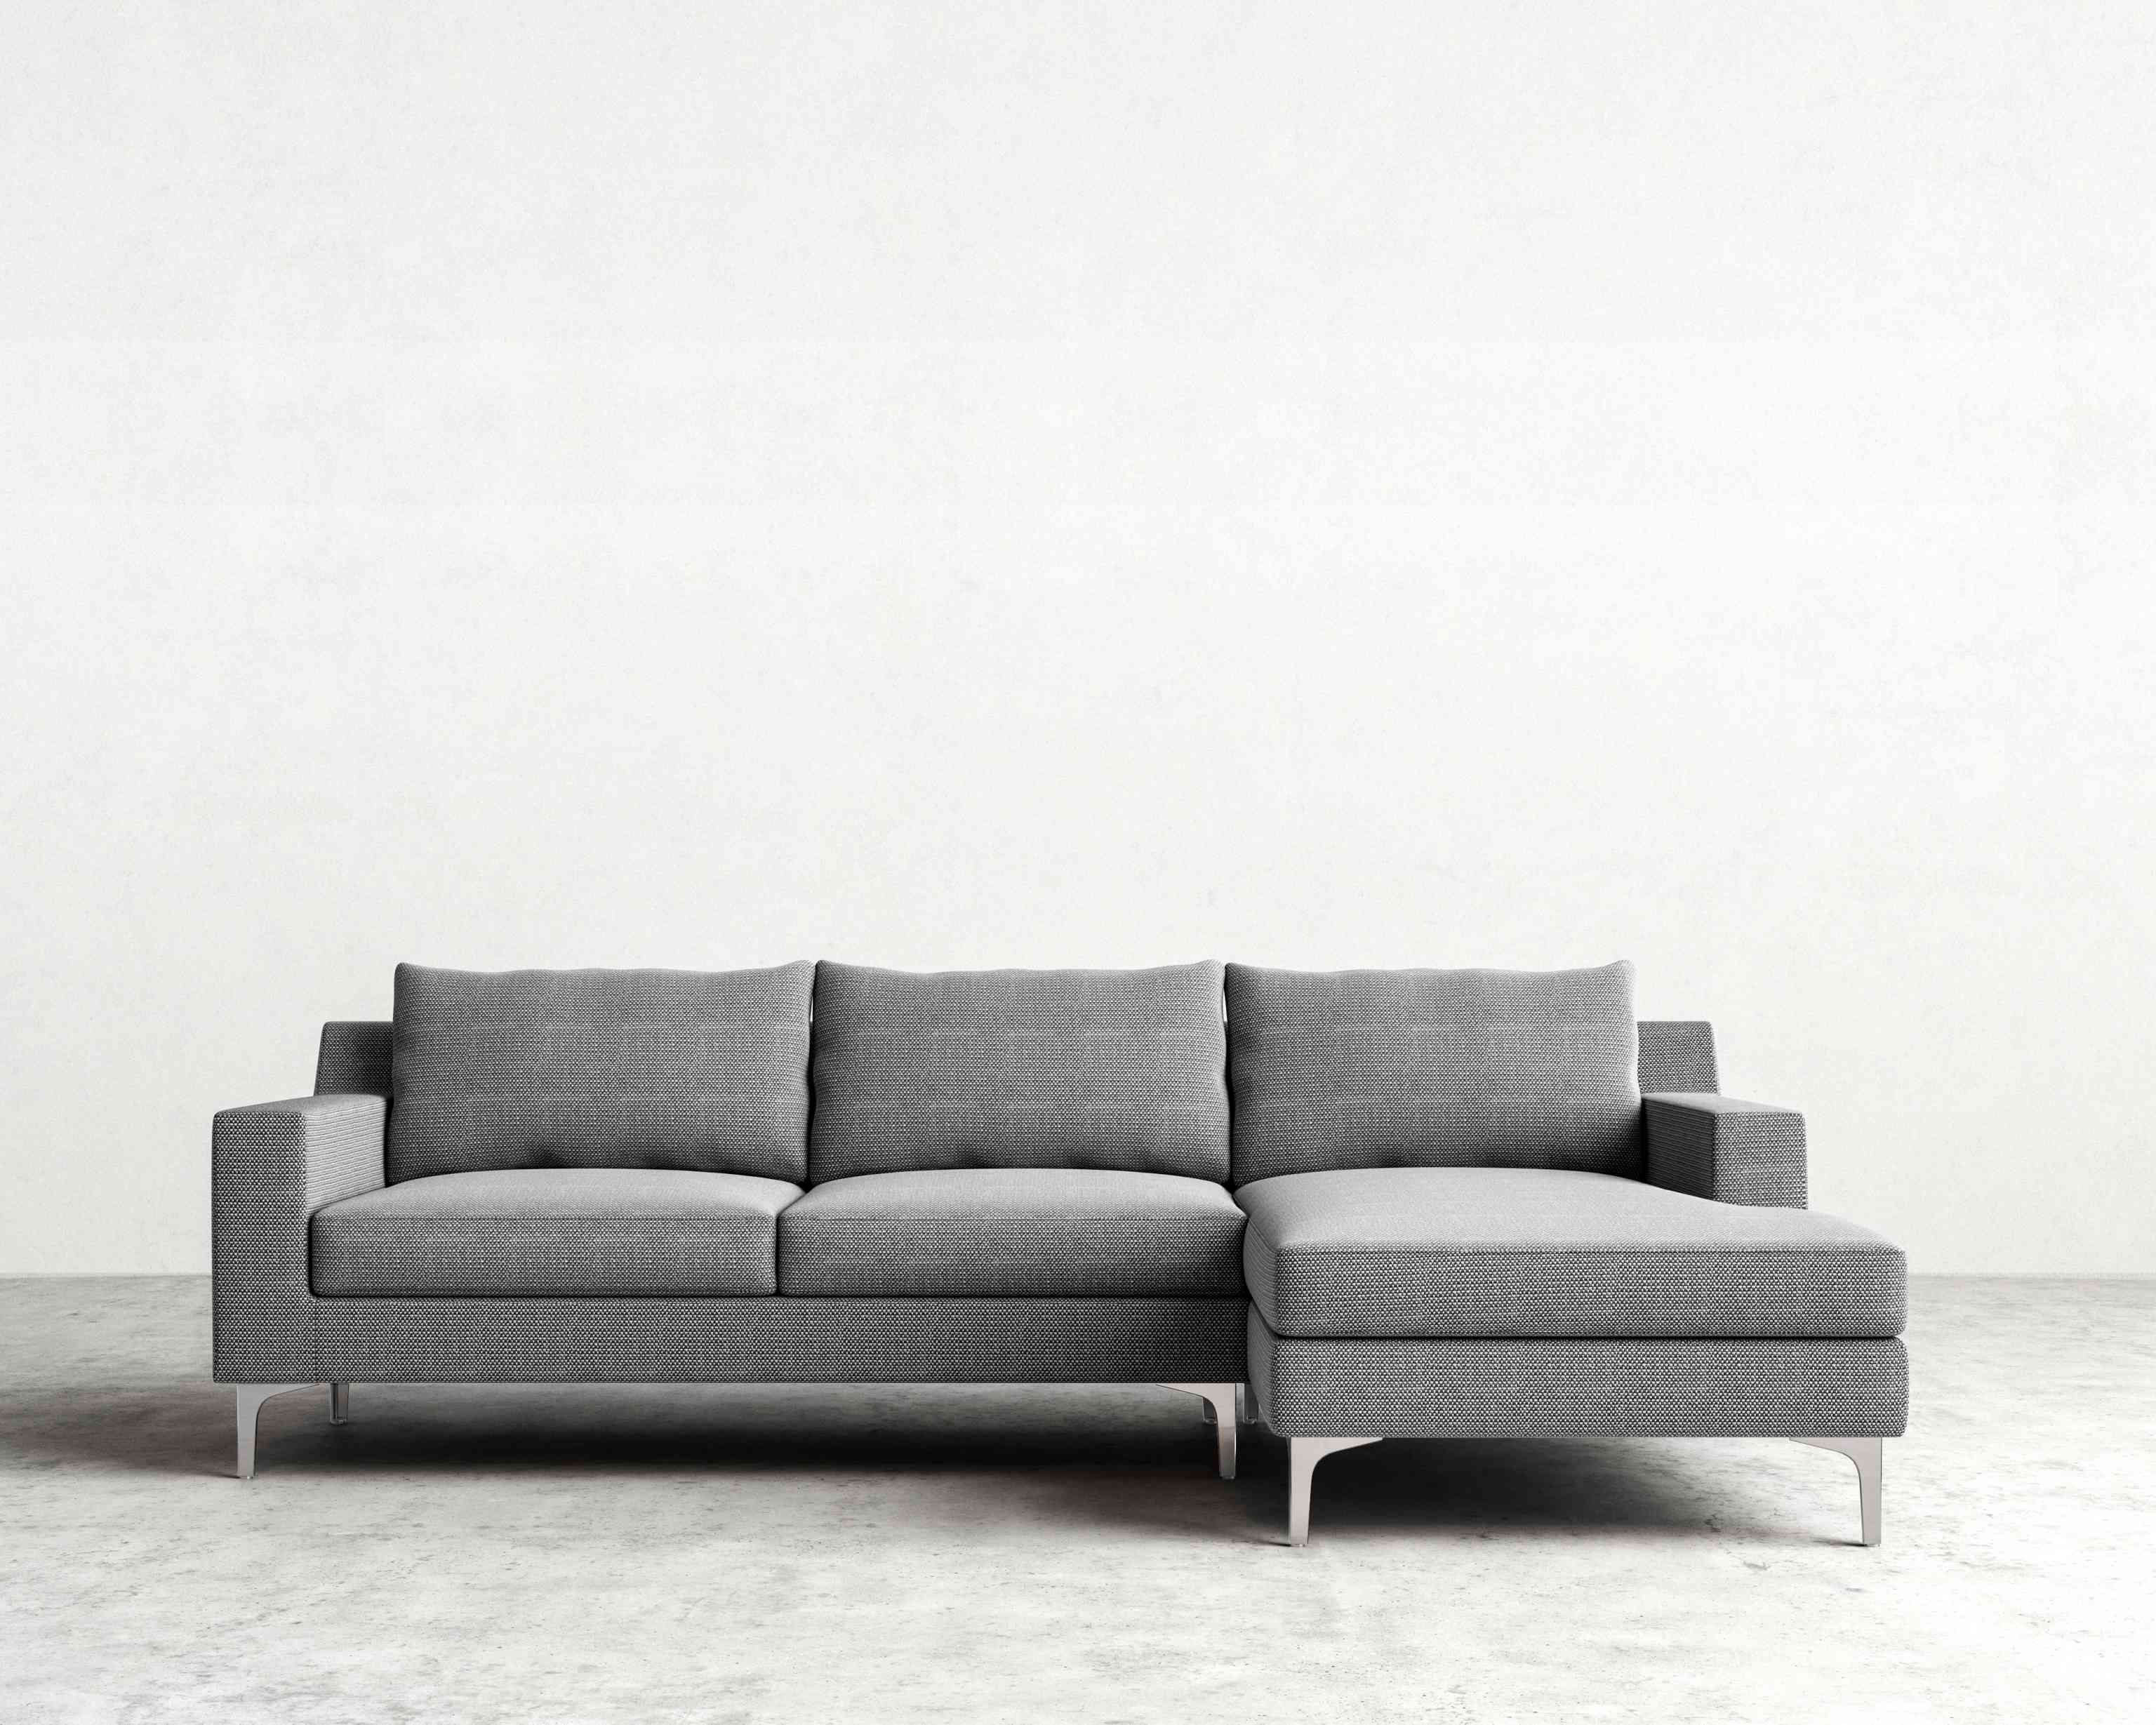 Porter 2 Piece Sectional Sofa with Chaise Fabric